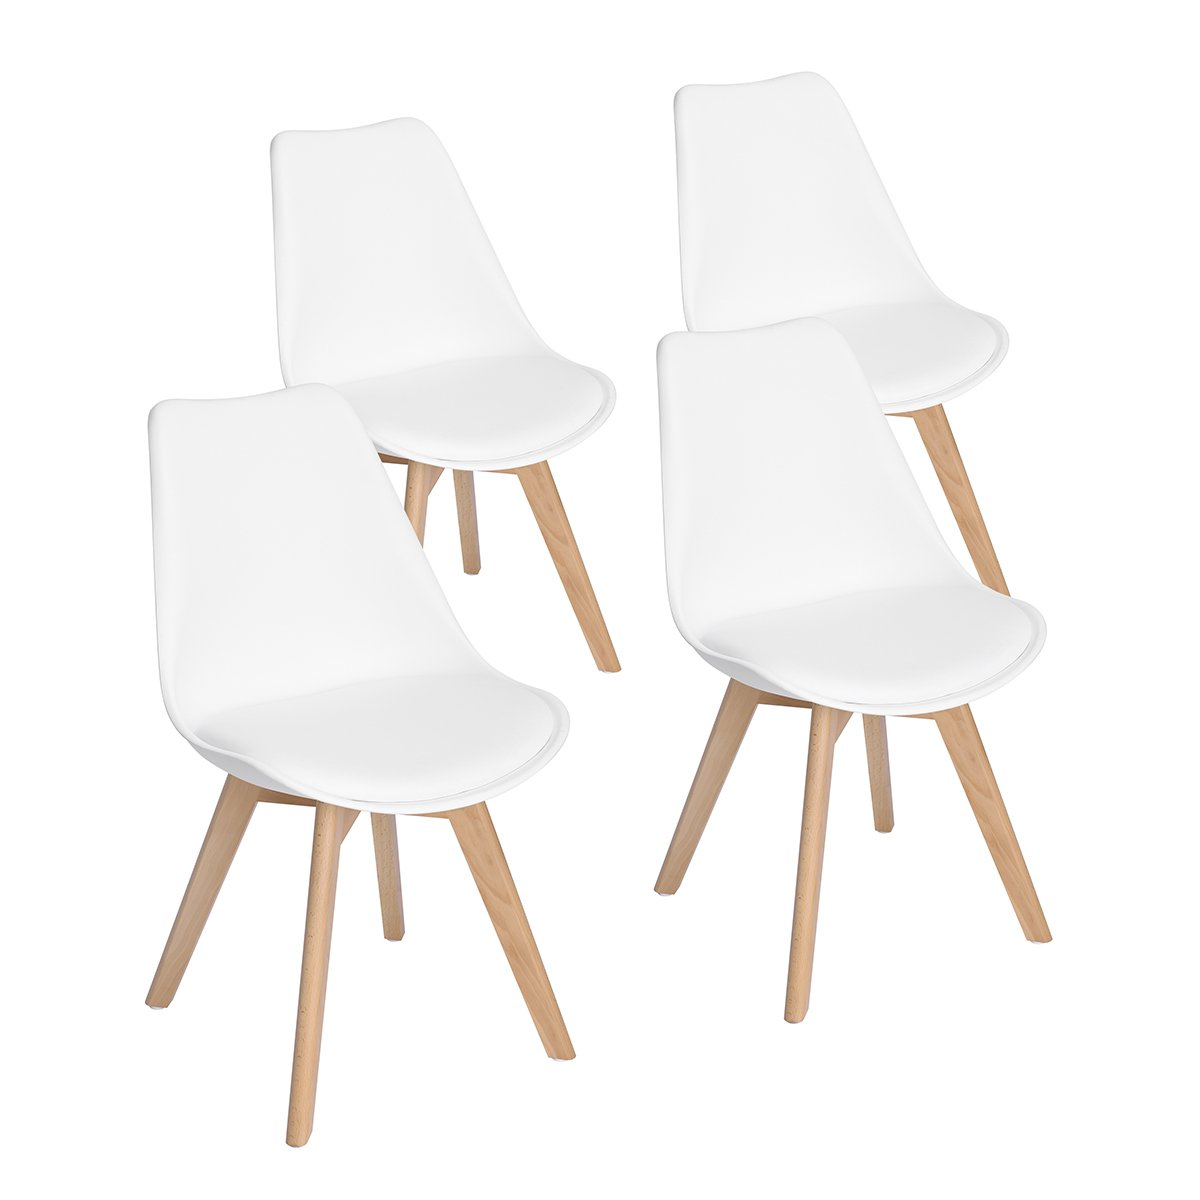 EGGREE Set of 2 Tulip Dining/Office Chair Solid Wood Beech Legs, (TM) Armless Padded Design Chairs Extra Comfort - Black EGGREE-TP-10